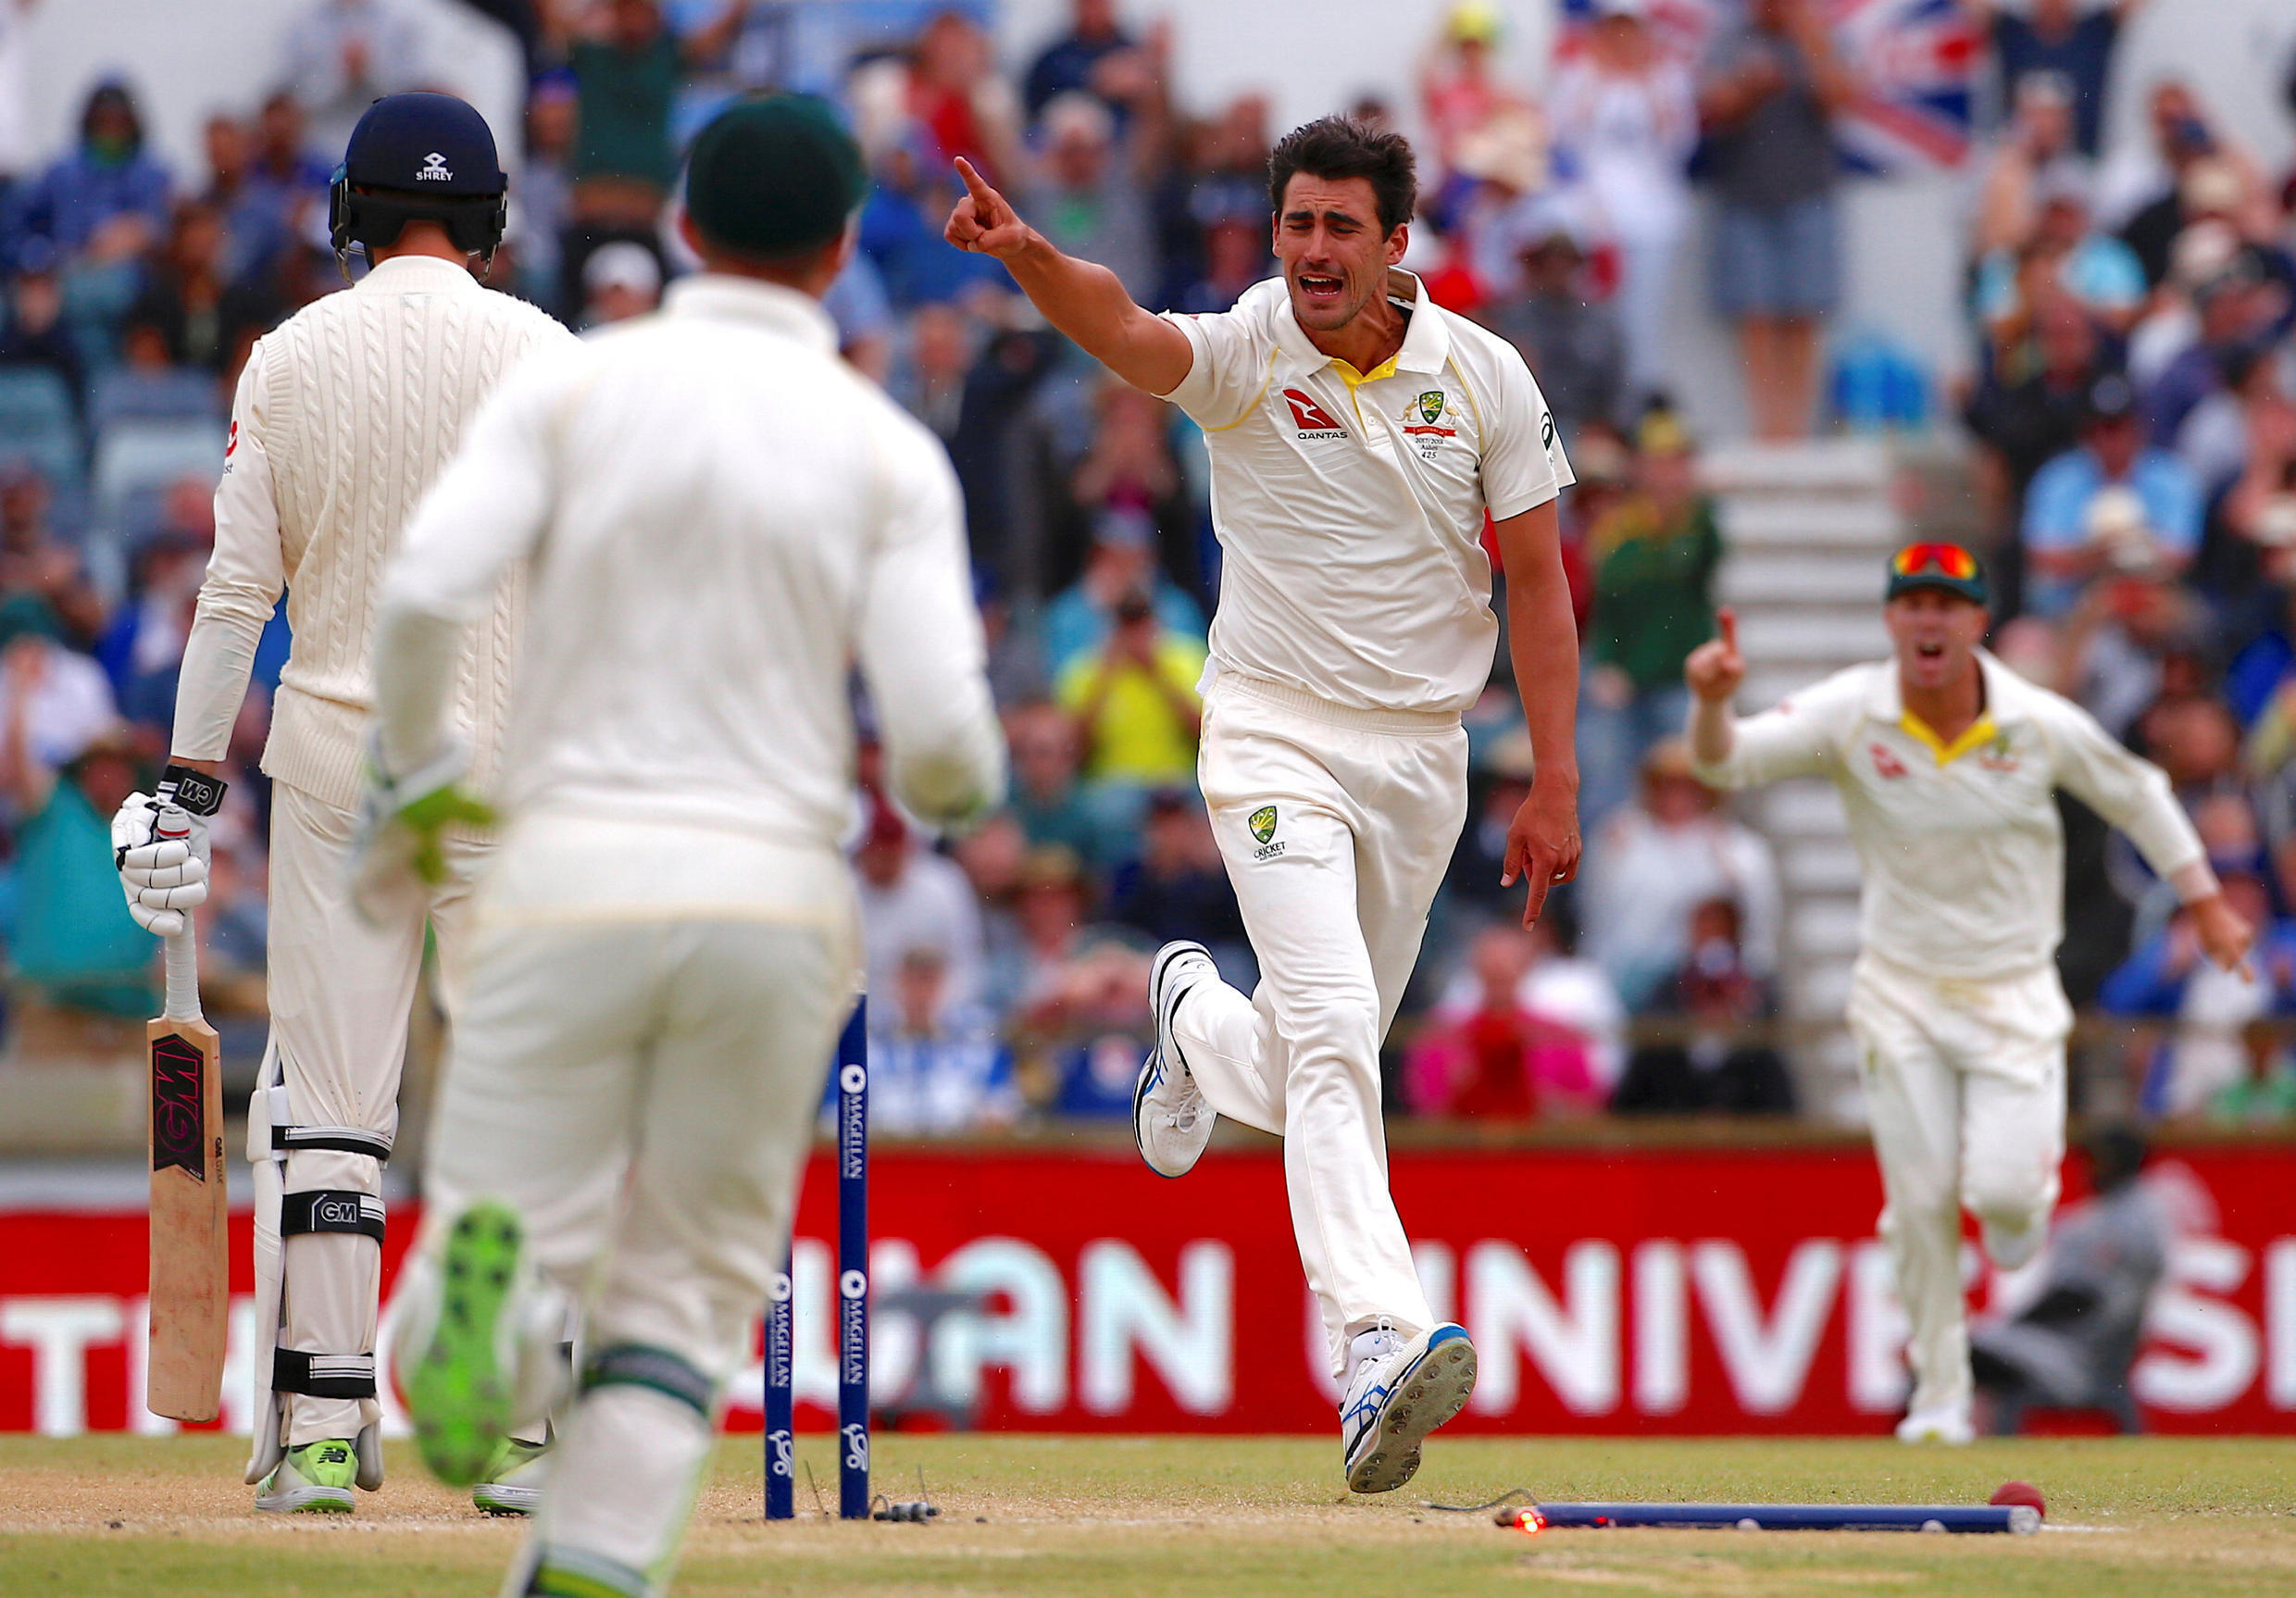 Australia's Mitchell Starc celebrates after bowling England's James Vince in the third Ashes Test at the Waca ground in Perth.